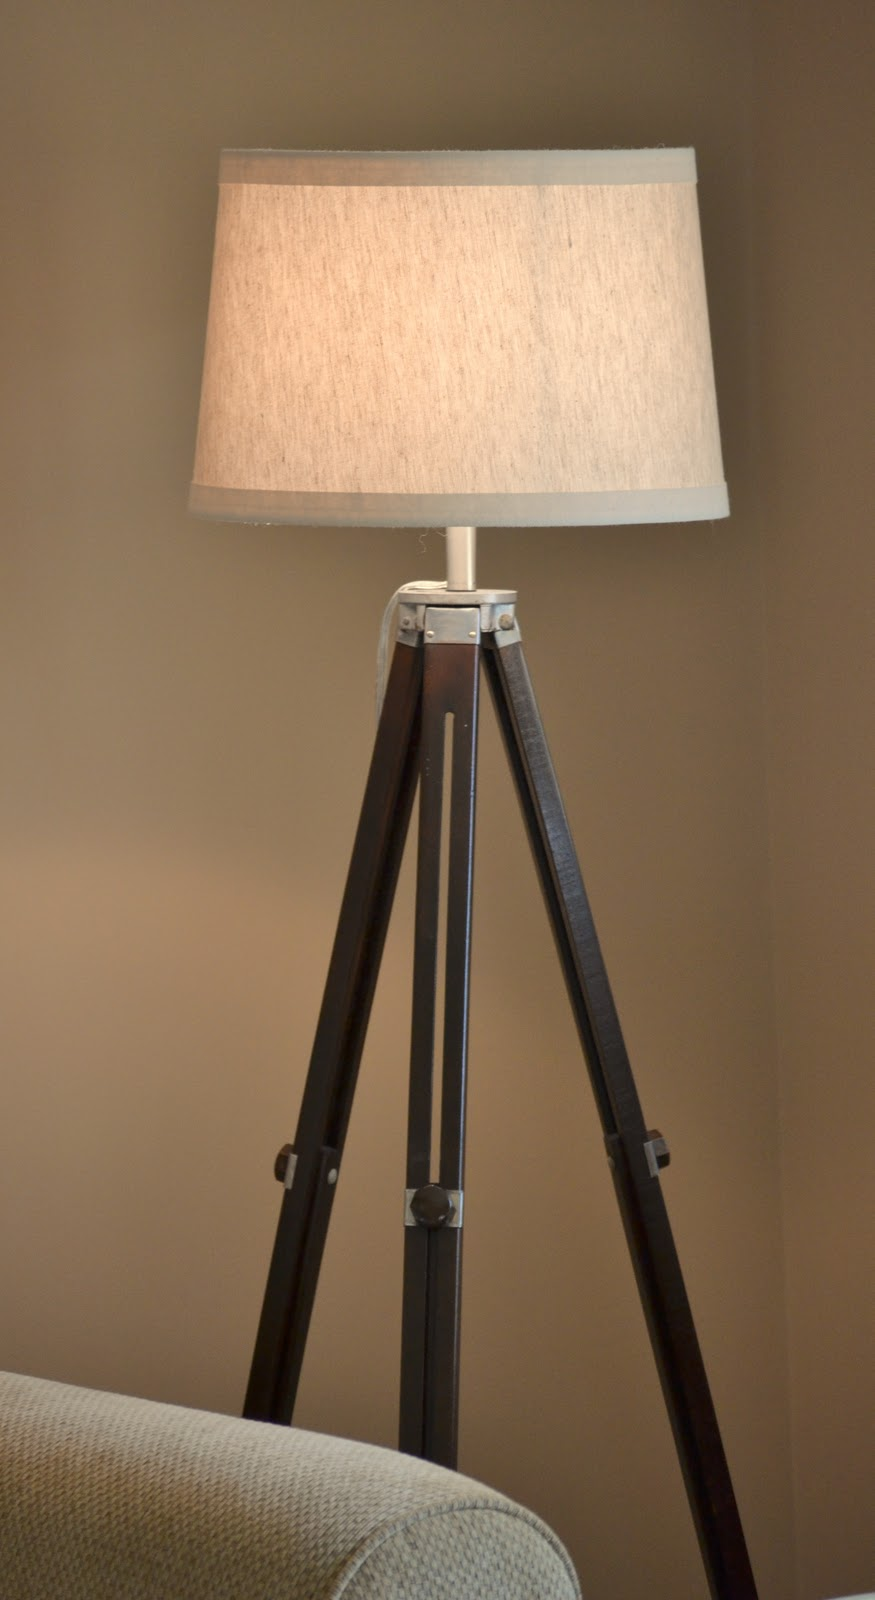 Dwelling In The Word: Dwelling Cents: Tripod Lamp